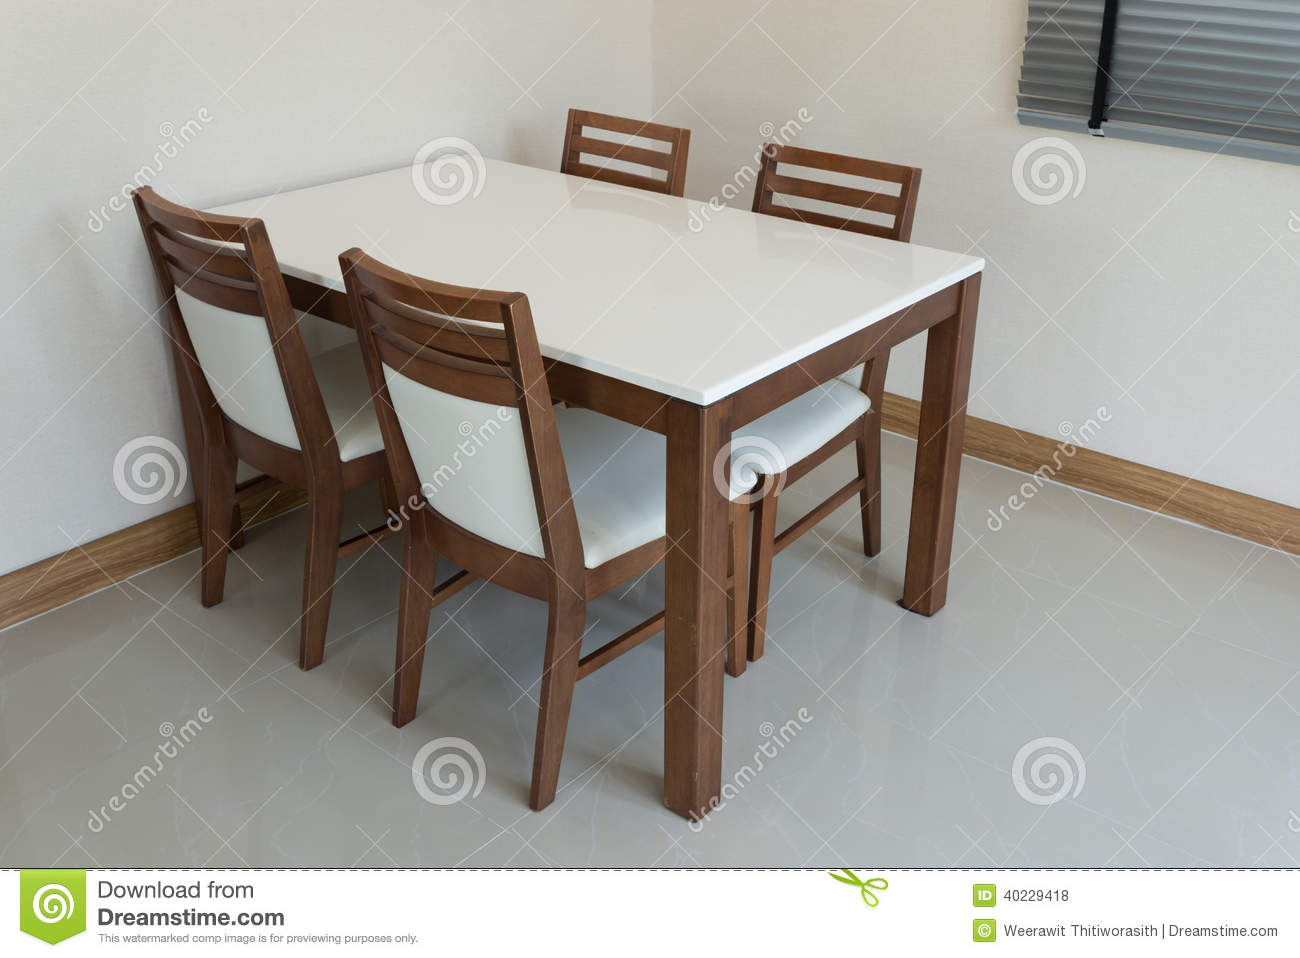 Table de salle manger en bois photo stock image 40229418 for Table en bois salle a manger